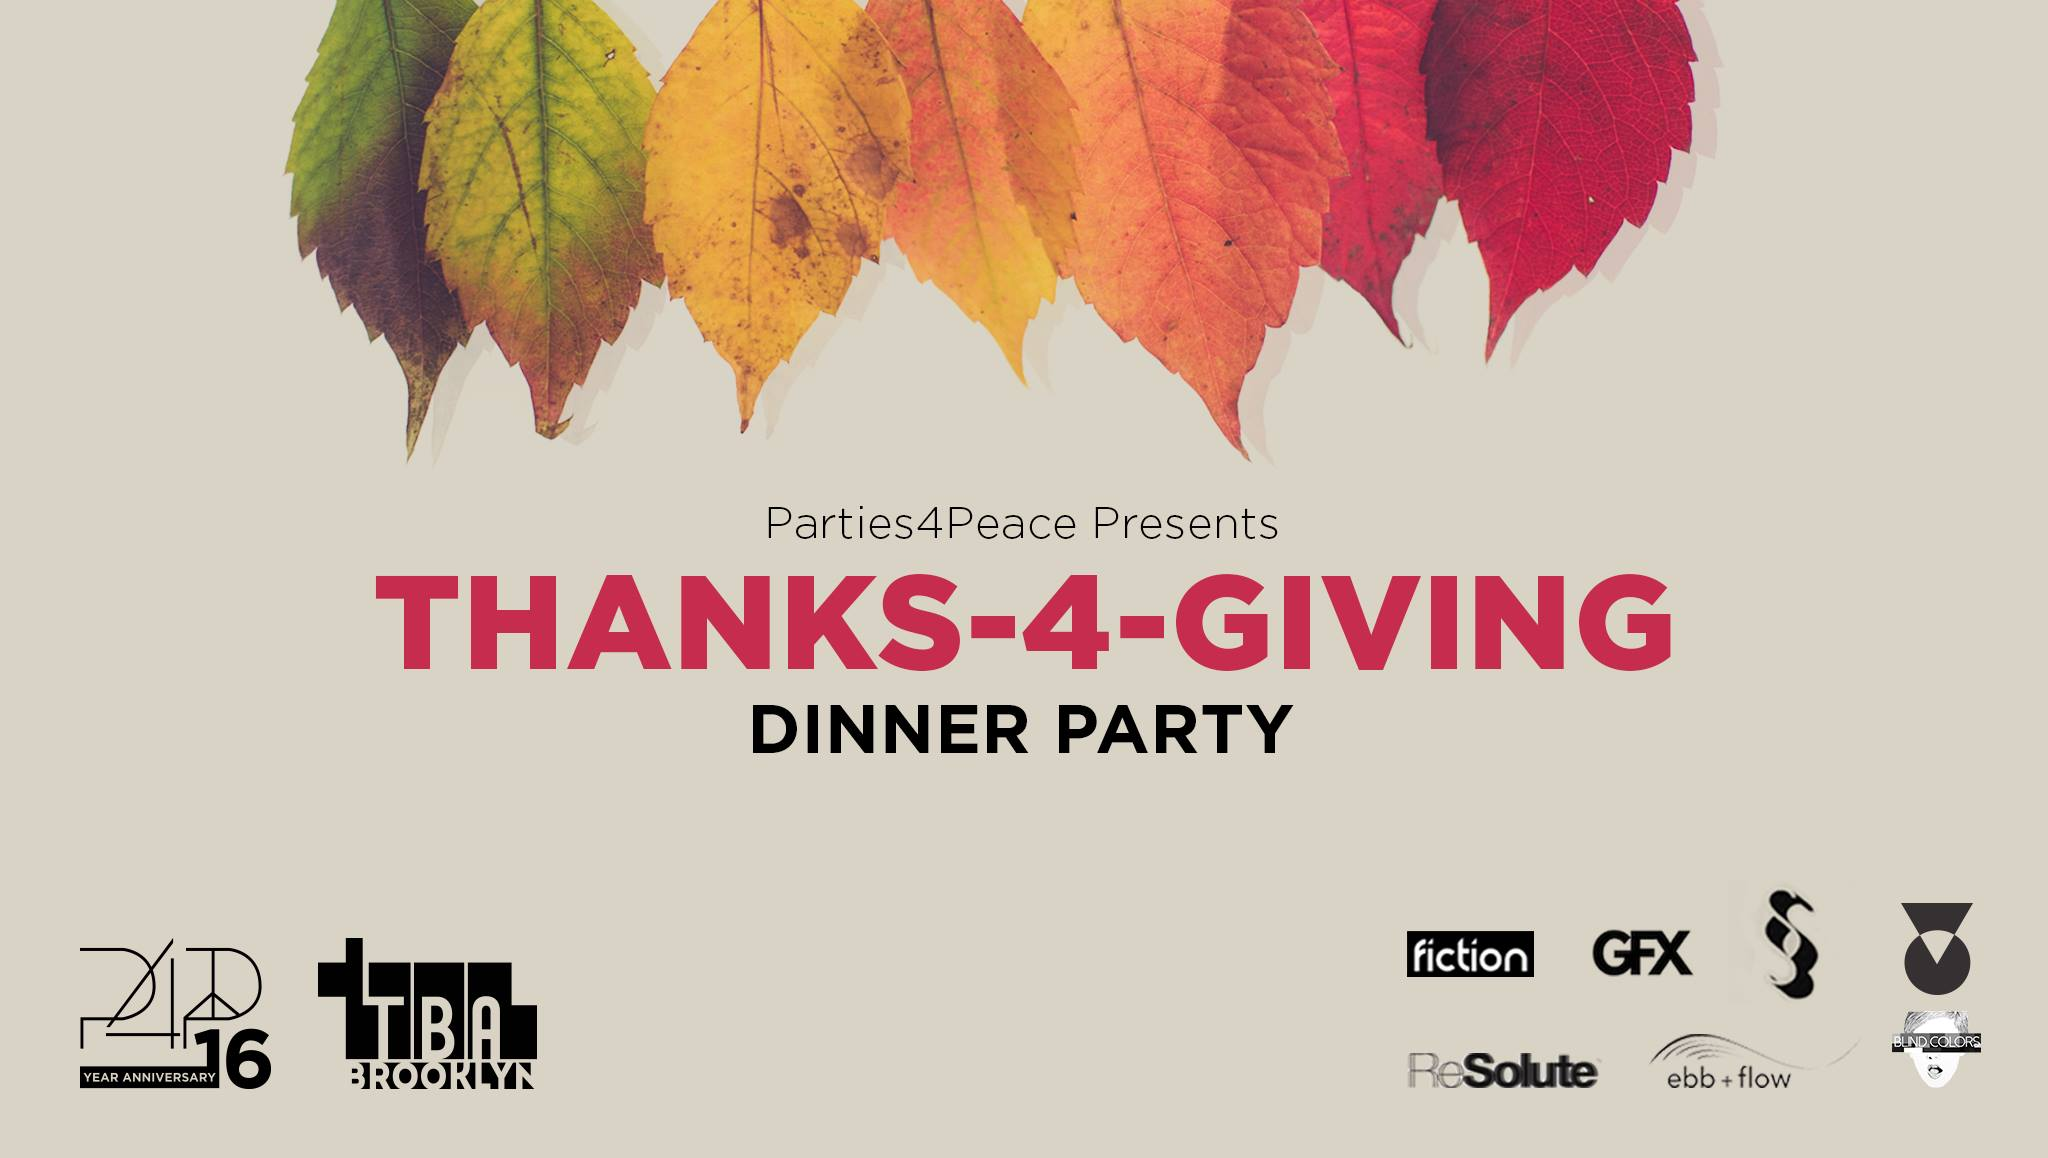 Thanks-4-Giving flyer